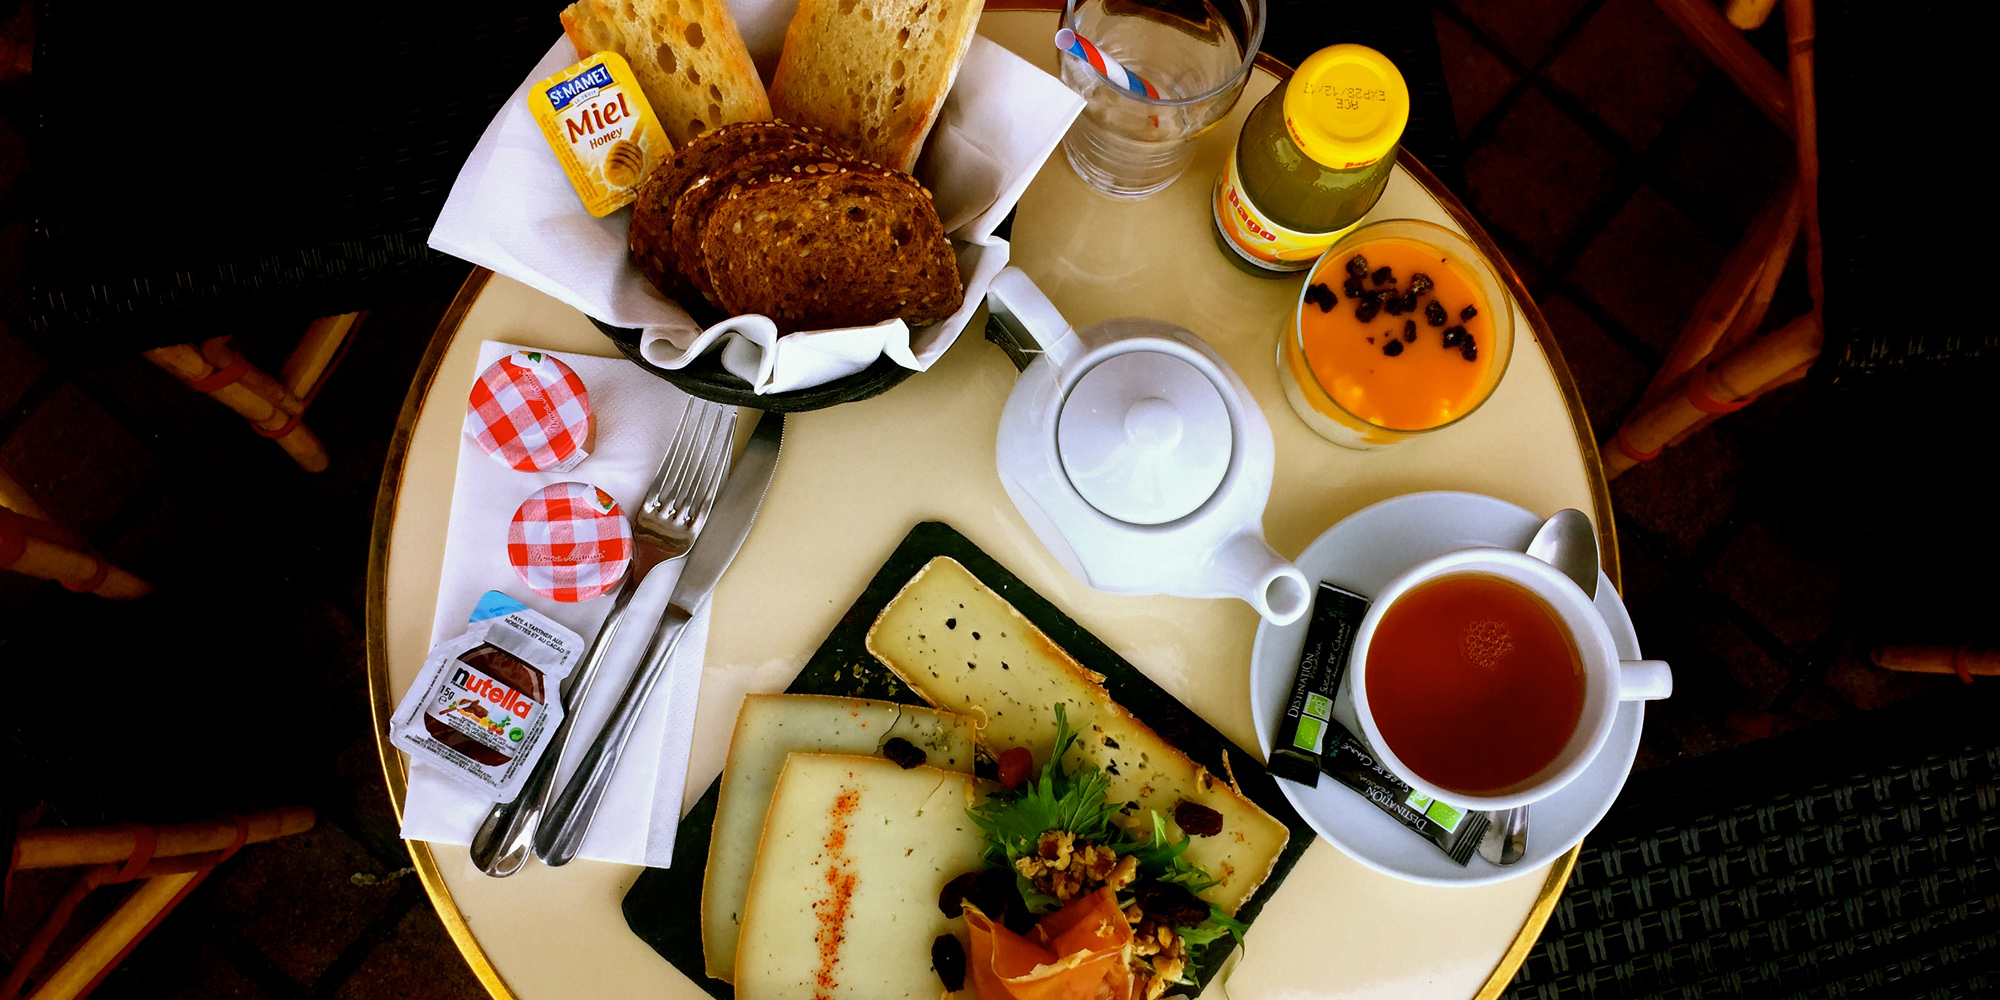 Brunch Le Vintage Cafe Bordeaux (33000 Bordeaux)